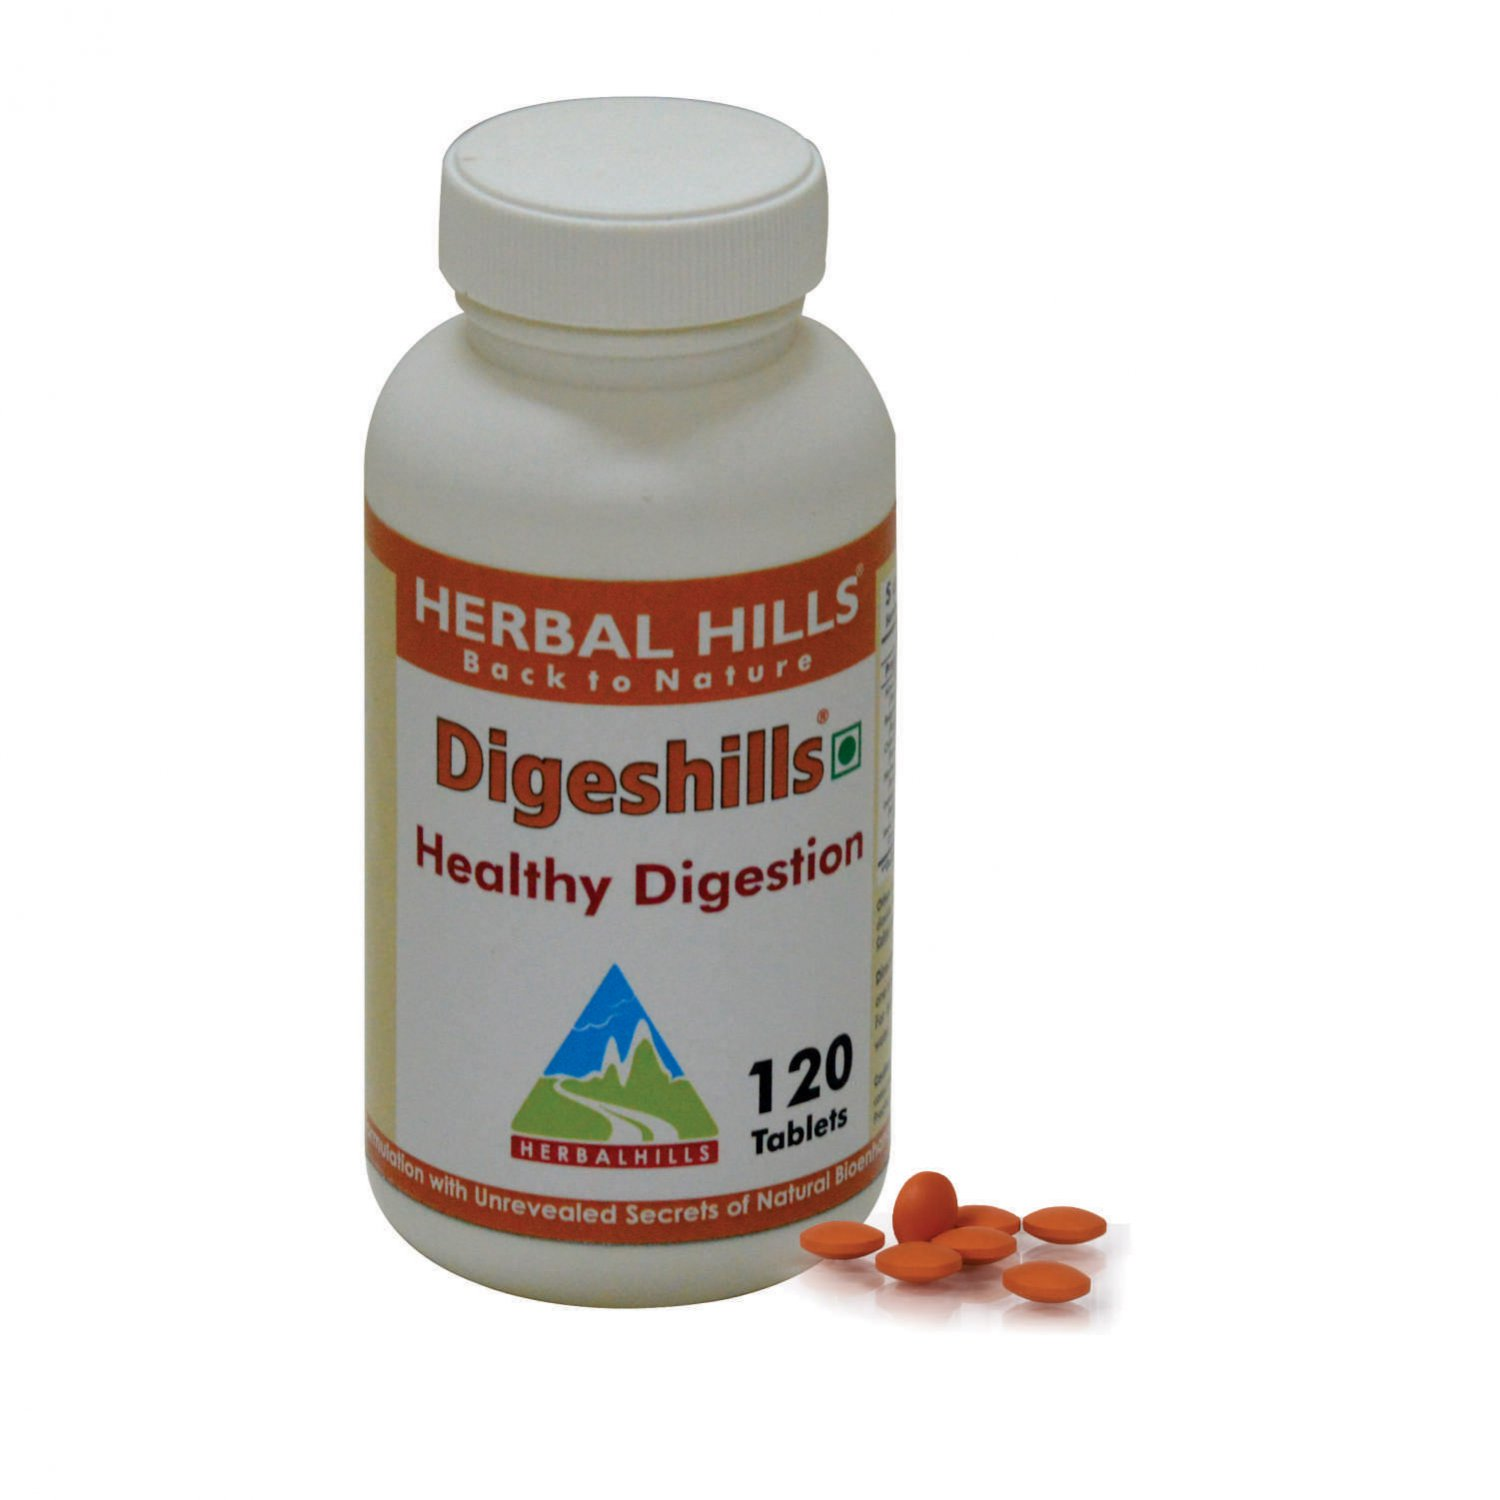 Digeshills 120 Tablets - Healthy Digestion